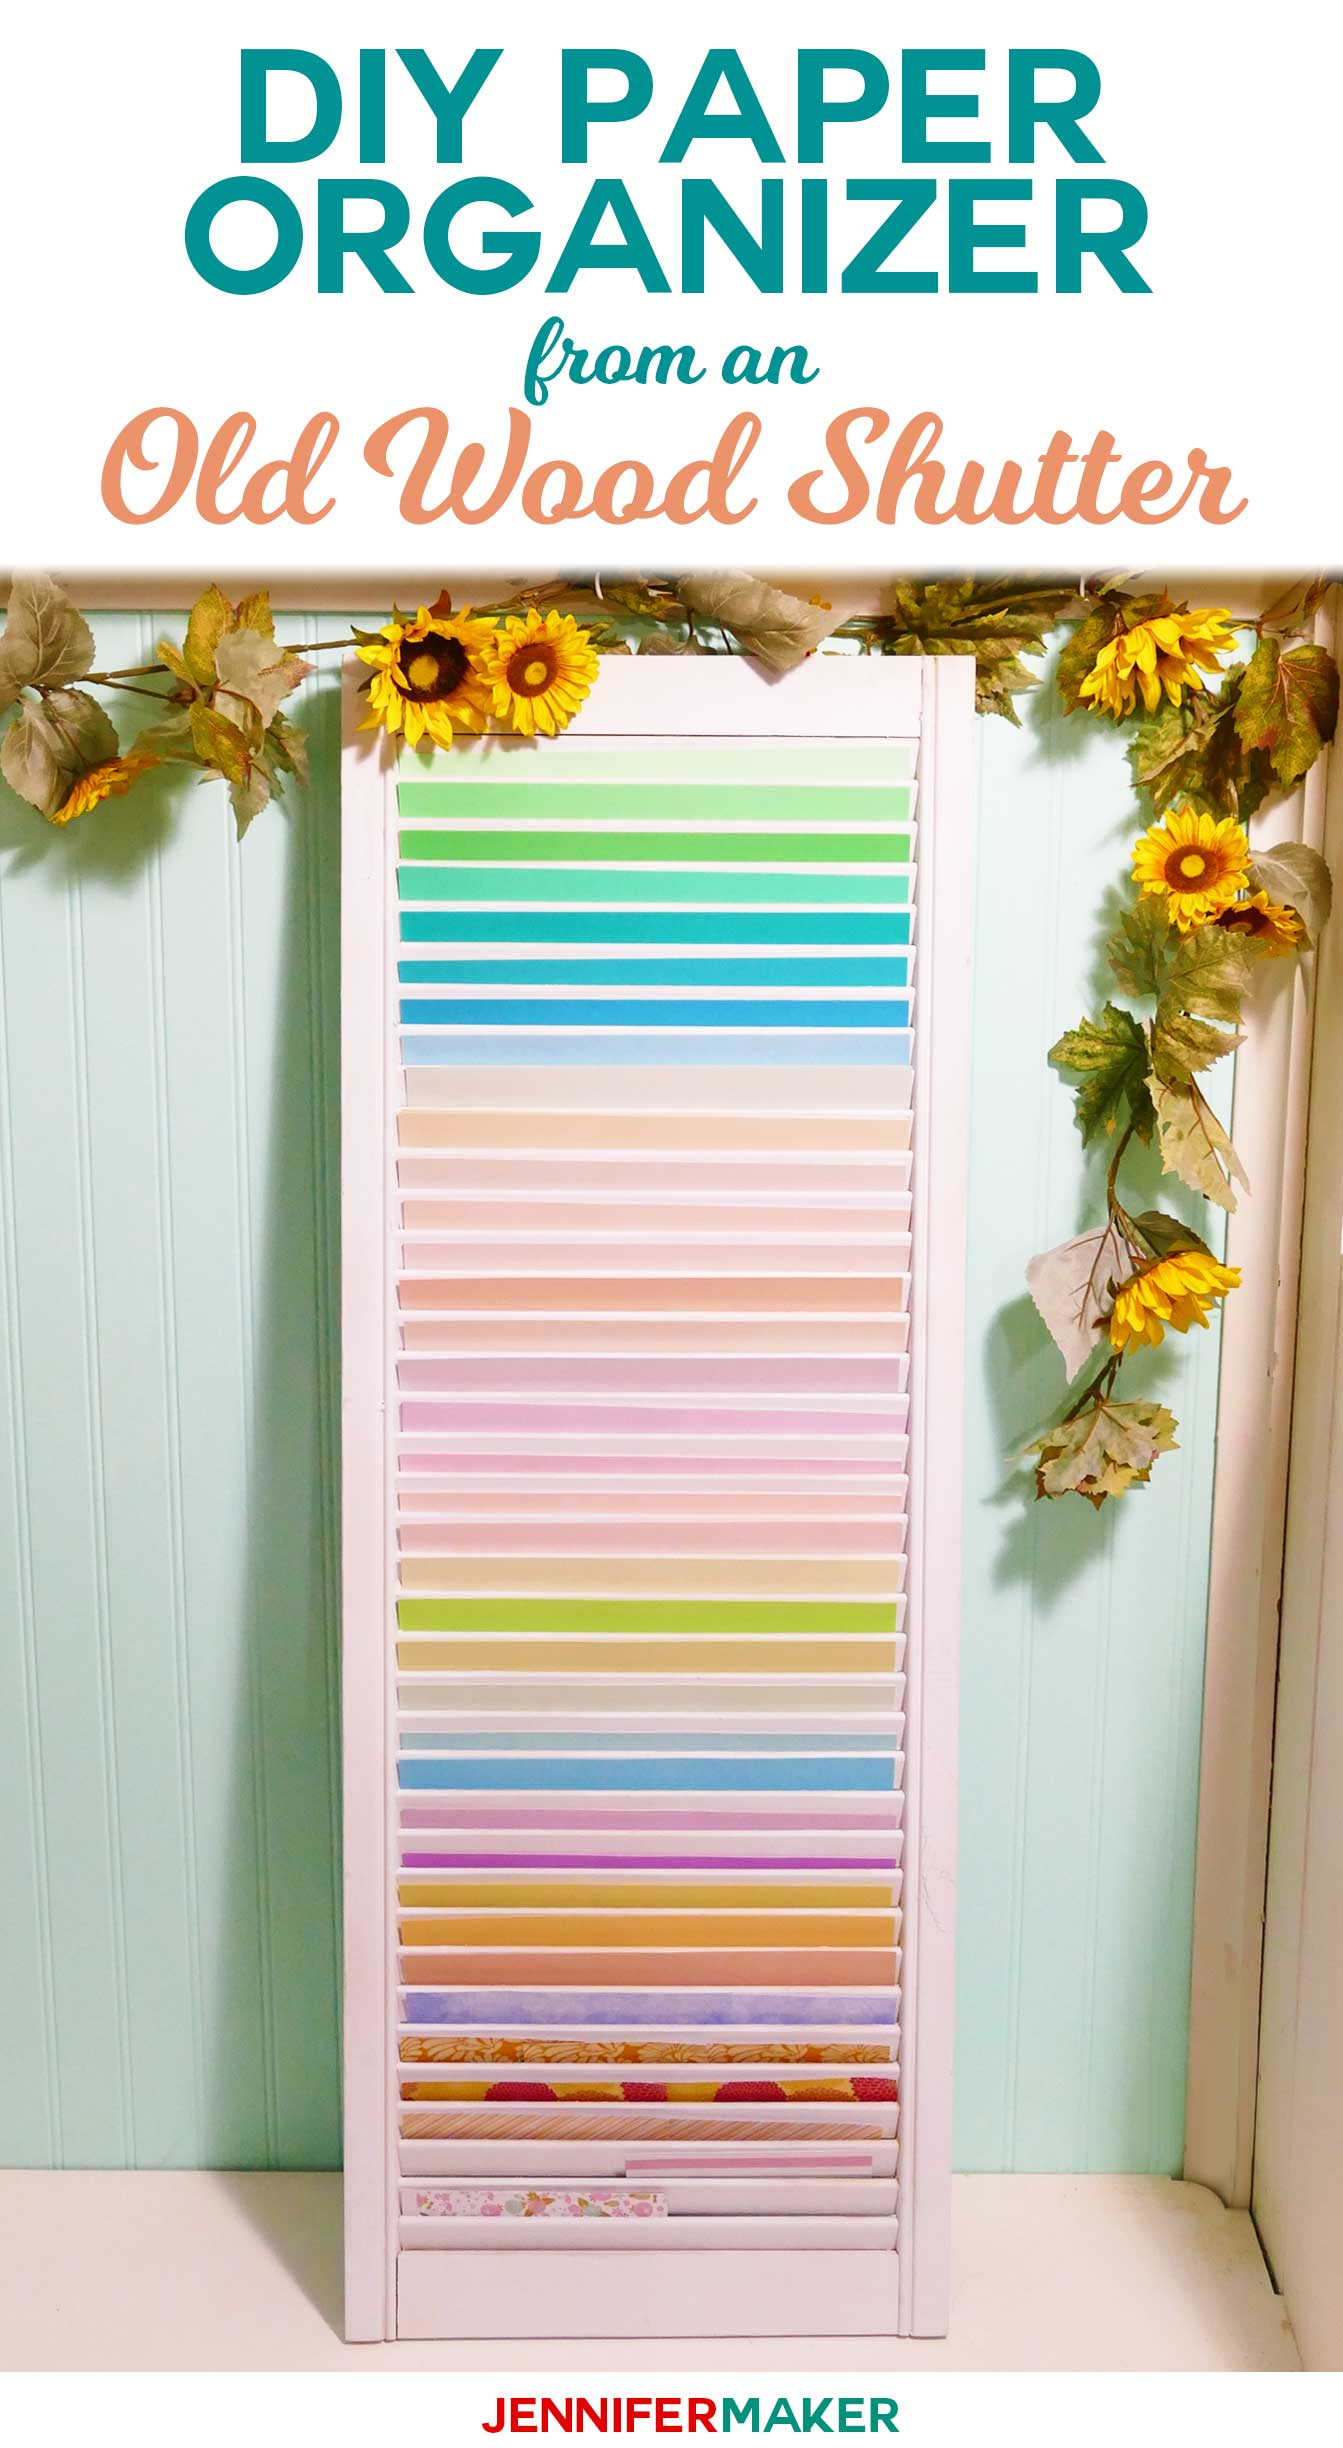 Diy Paper Organizer From Repurposed Shutter - Upcycle Old Wood